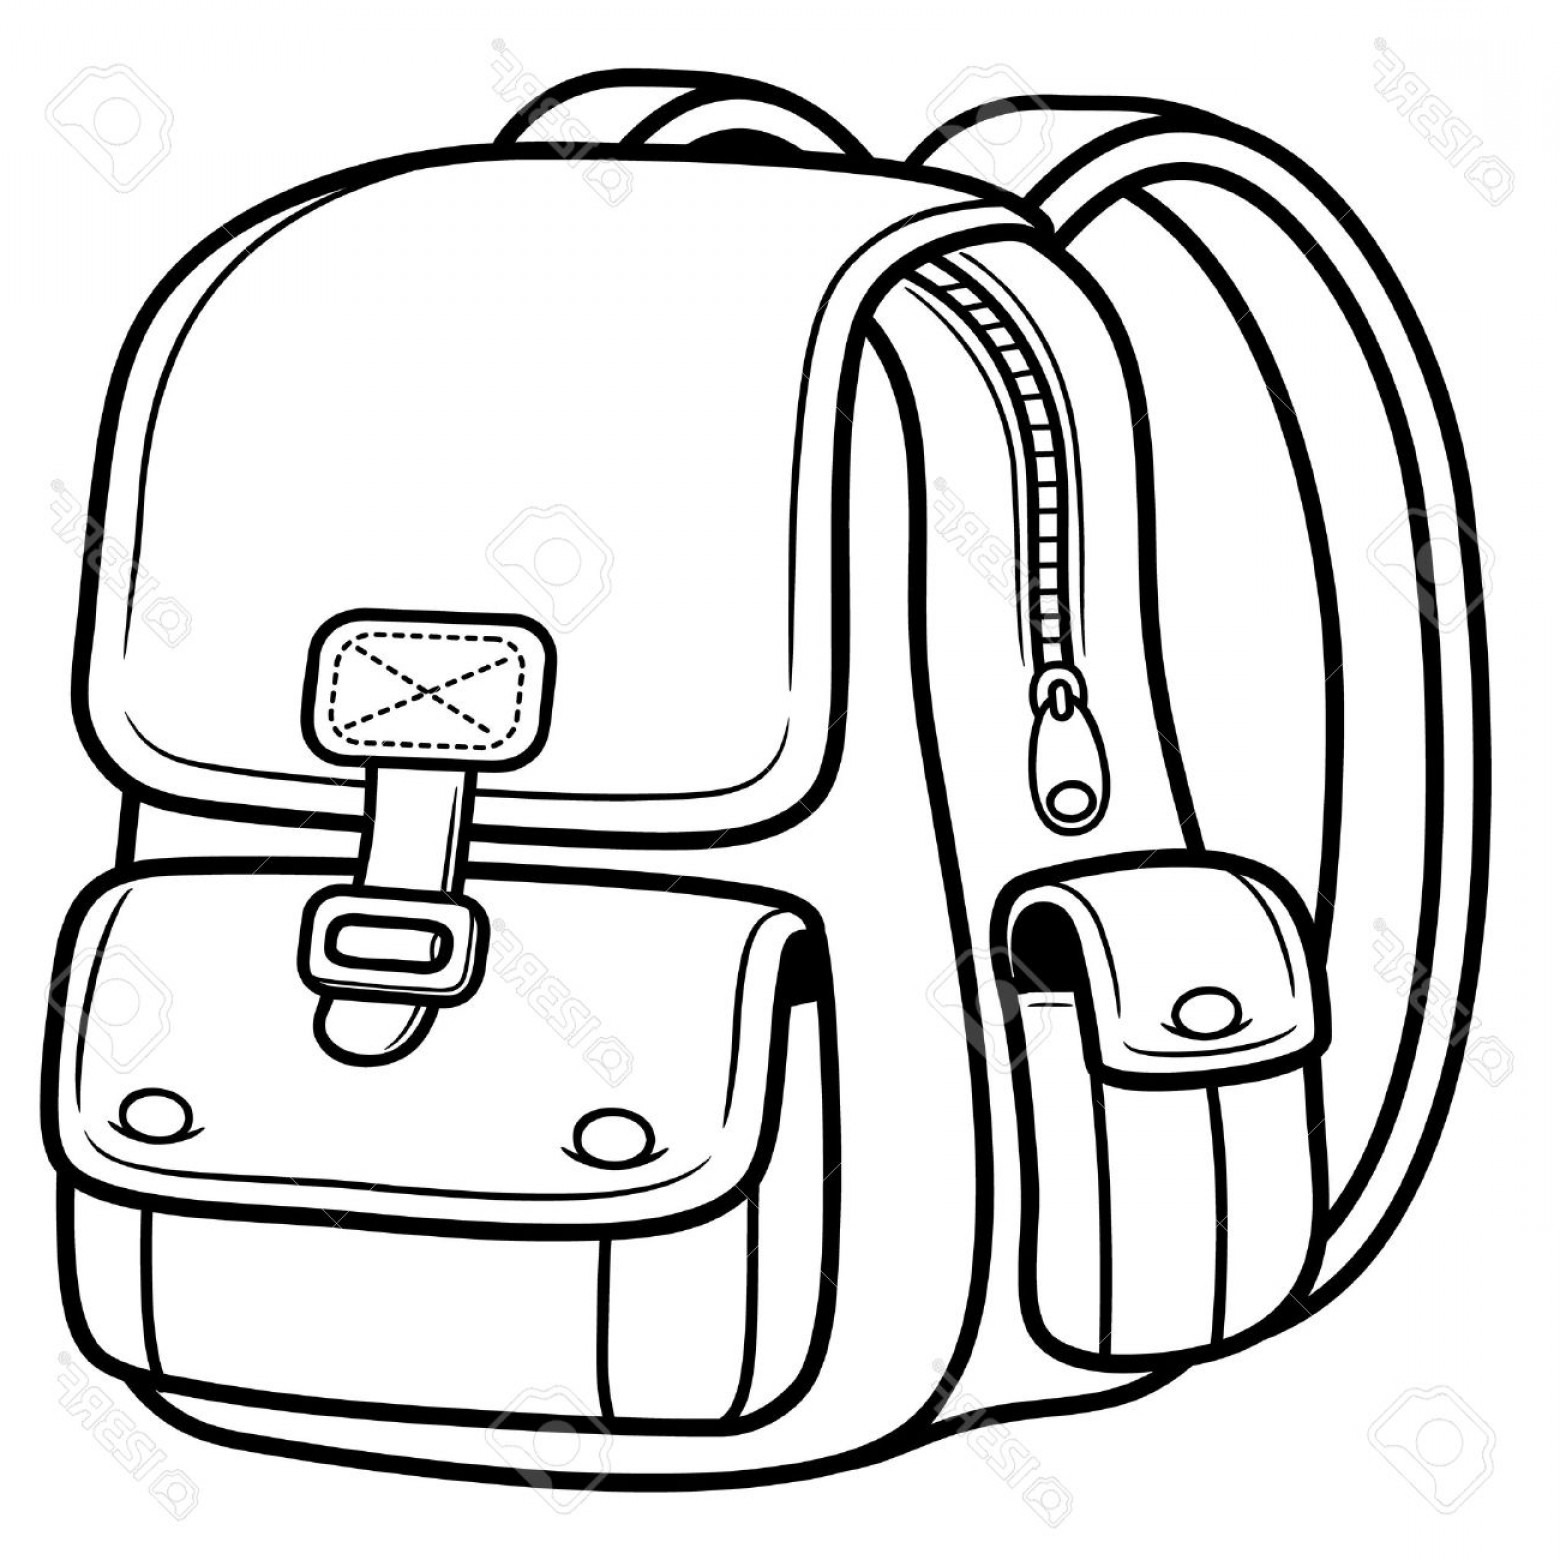 Library Of Black And White Graphic Free Stock An Old Bag